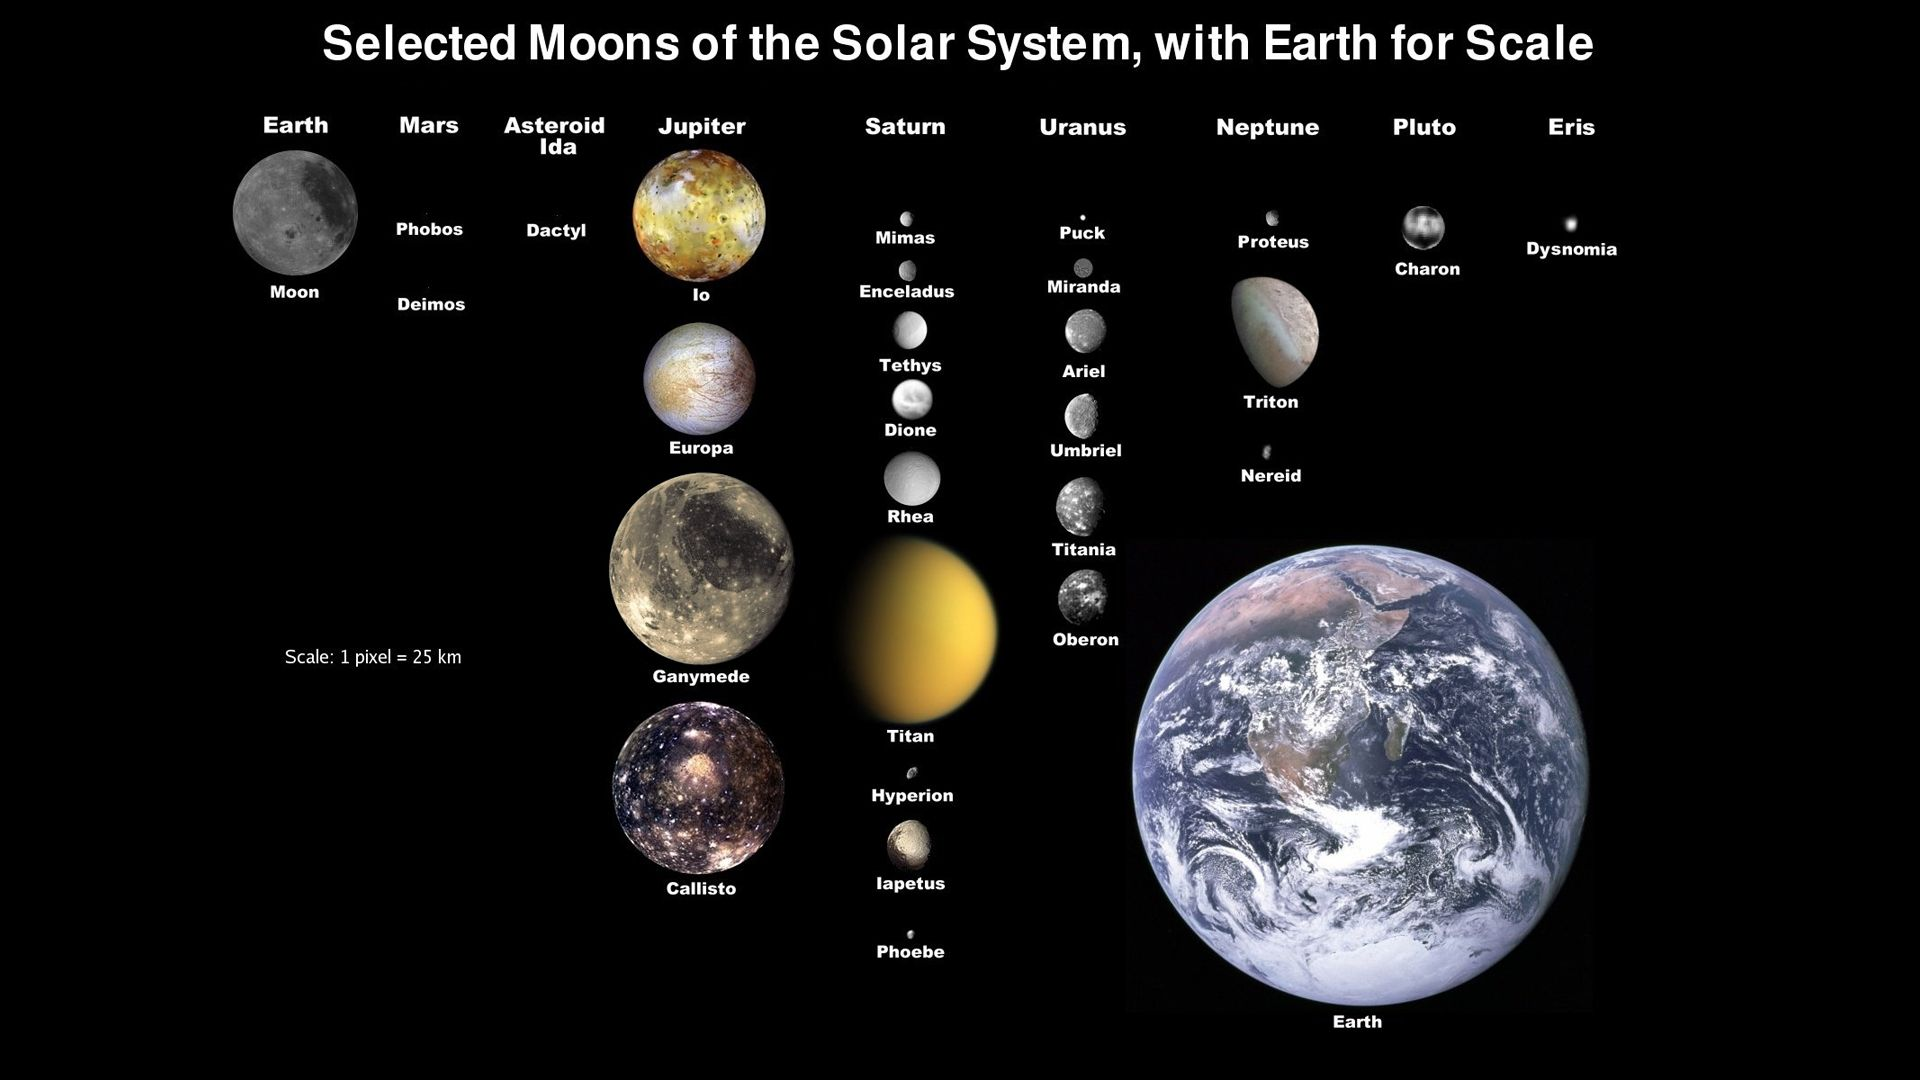 Solar System Complete Diagram Hd Wallpapers Planets And Moons Solar System Planets Jupiter Moons